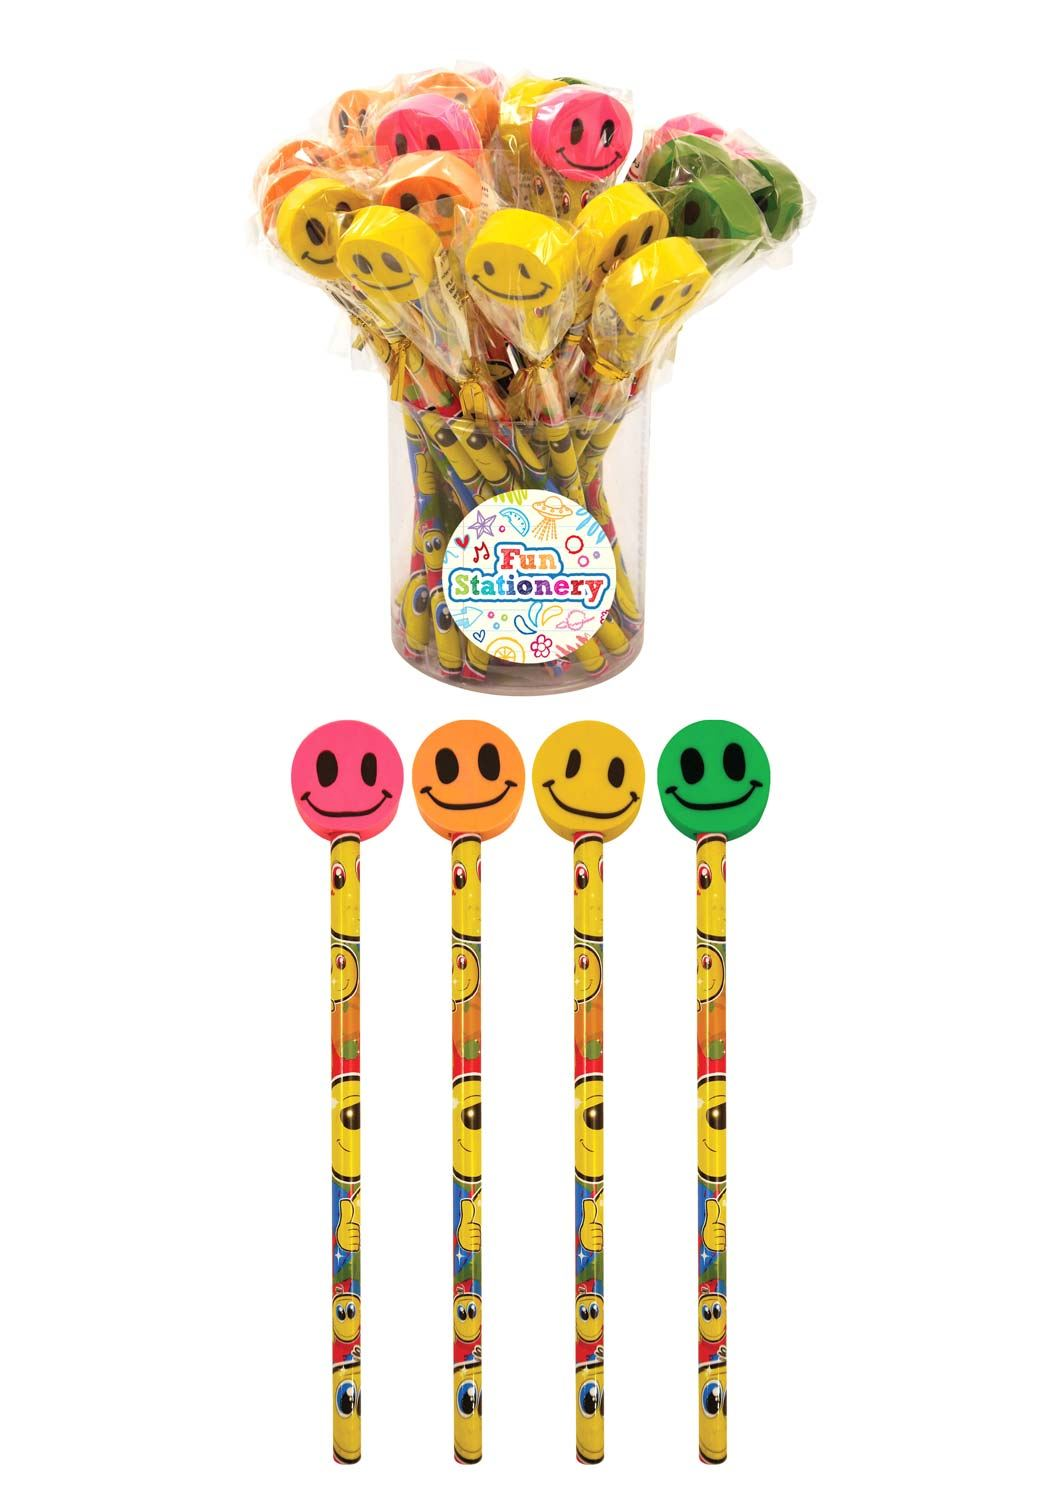 24 Smiley Pencils With Eraser Tops